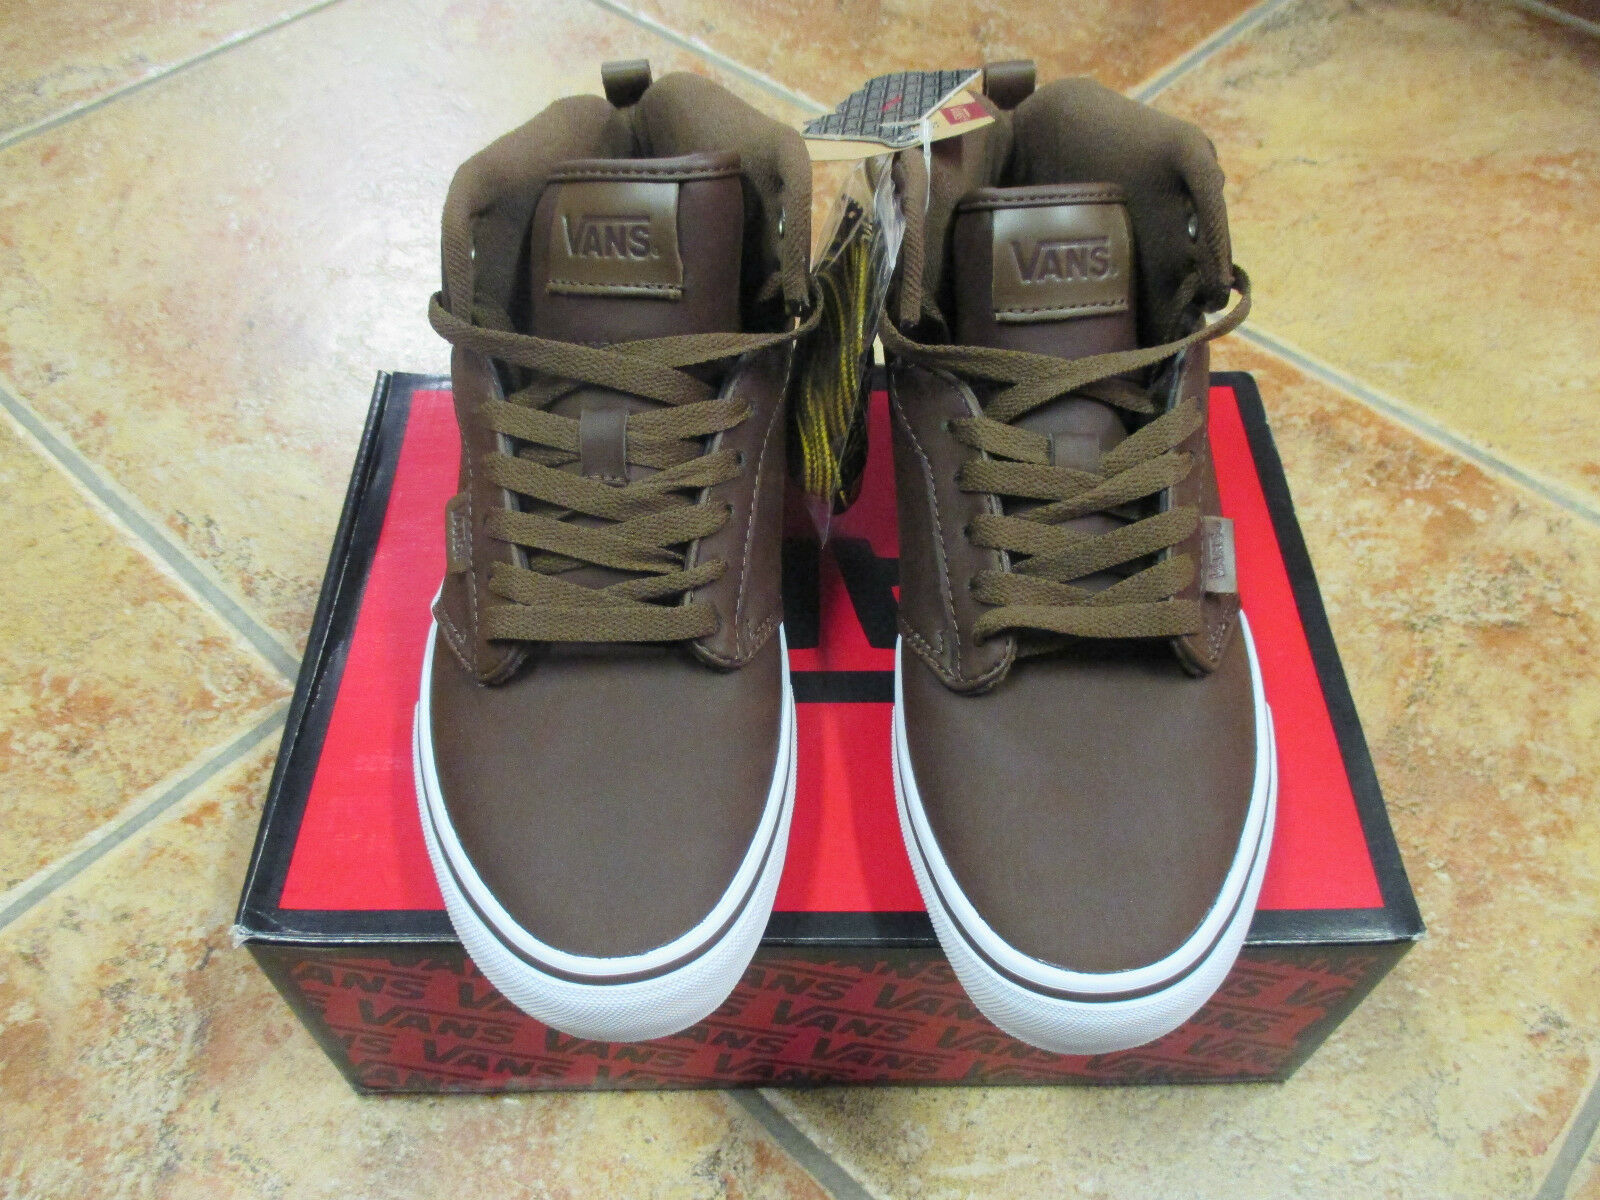 VANS GR.  ATWOOD HI  GR. VANS 41 US 8,5  (MTE)  BROWN / WHITE   VN-O VG3DX4  TOP NEU e93552